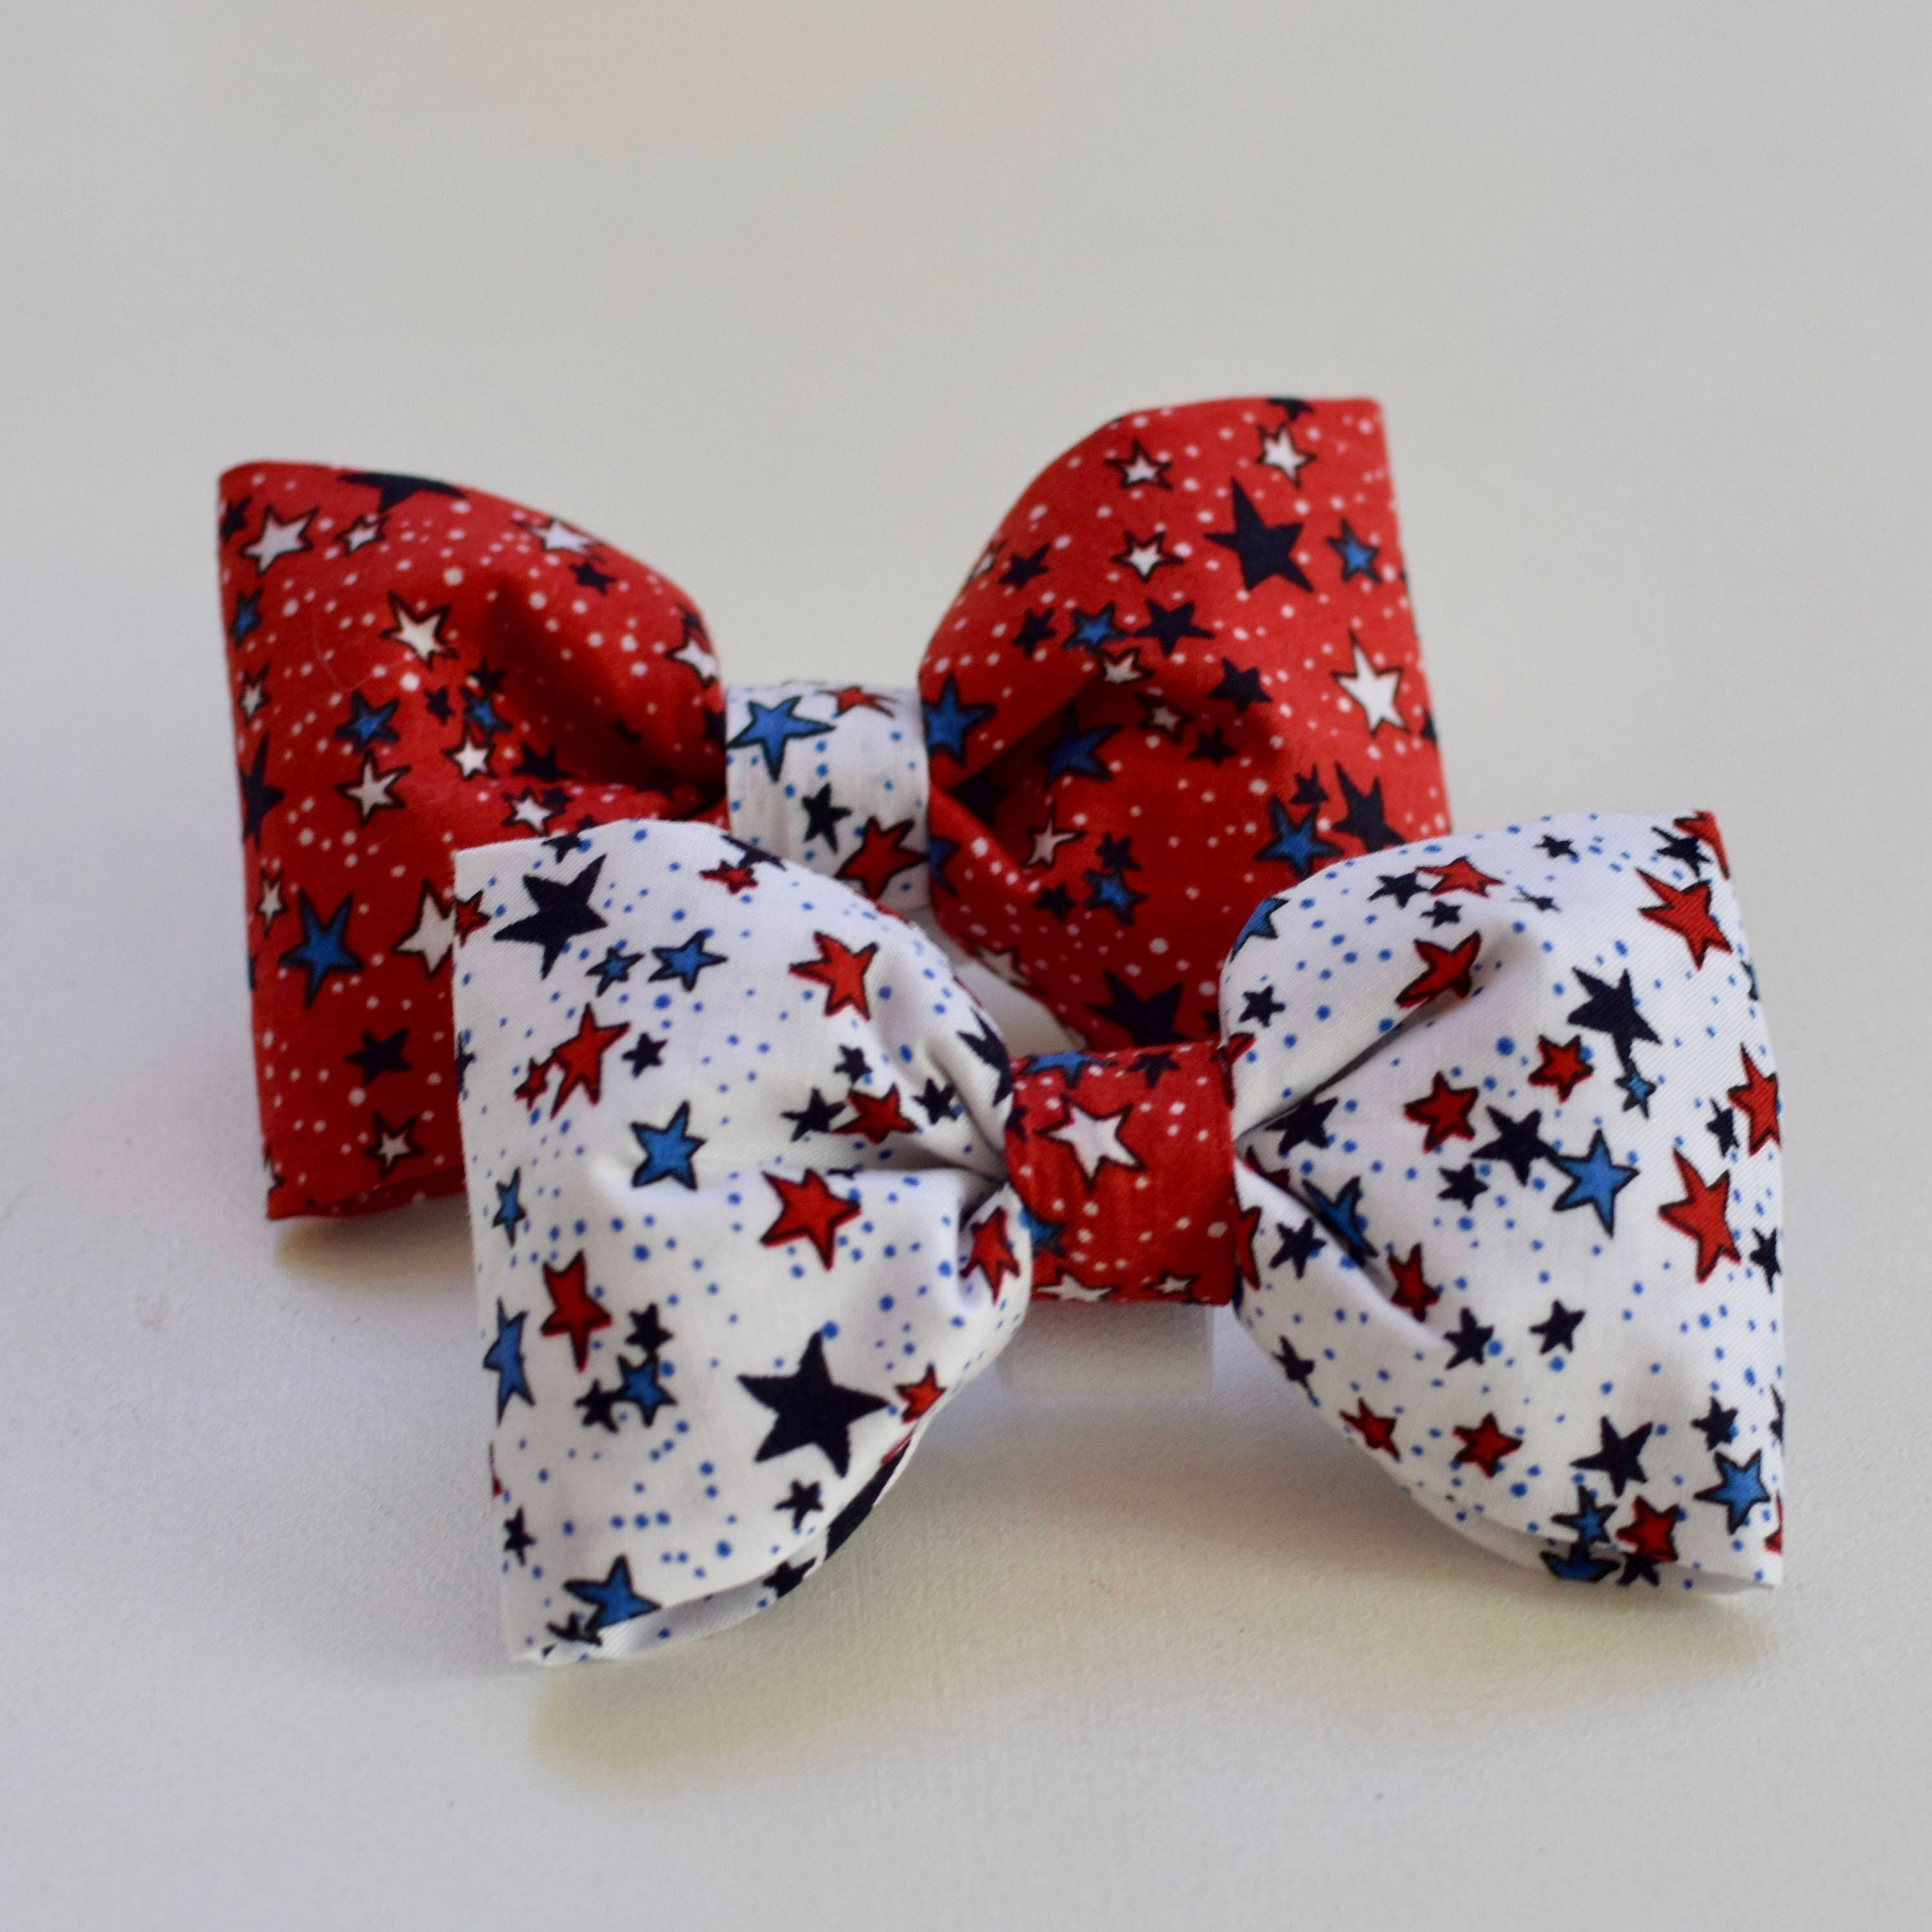 Personalized Dog Bow Tie - Patriotic Bow Ties - Custom Dog Lover Gifts - Walking Adventures - Special Occasions for Pets